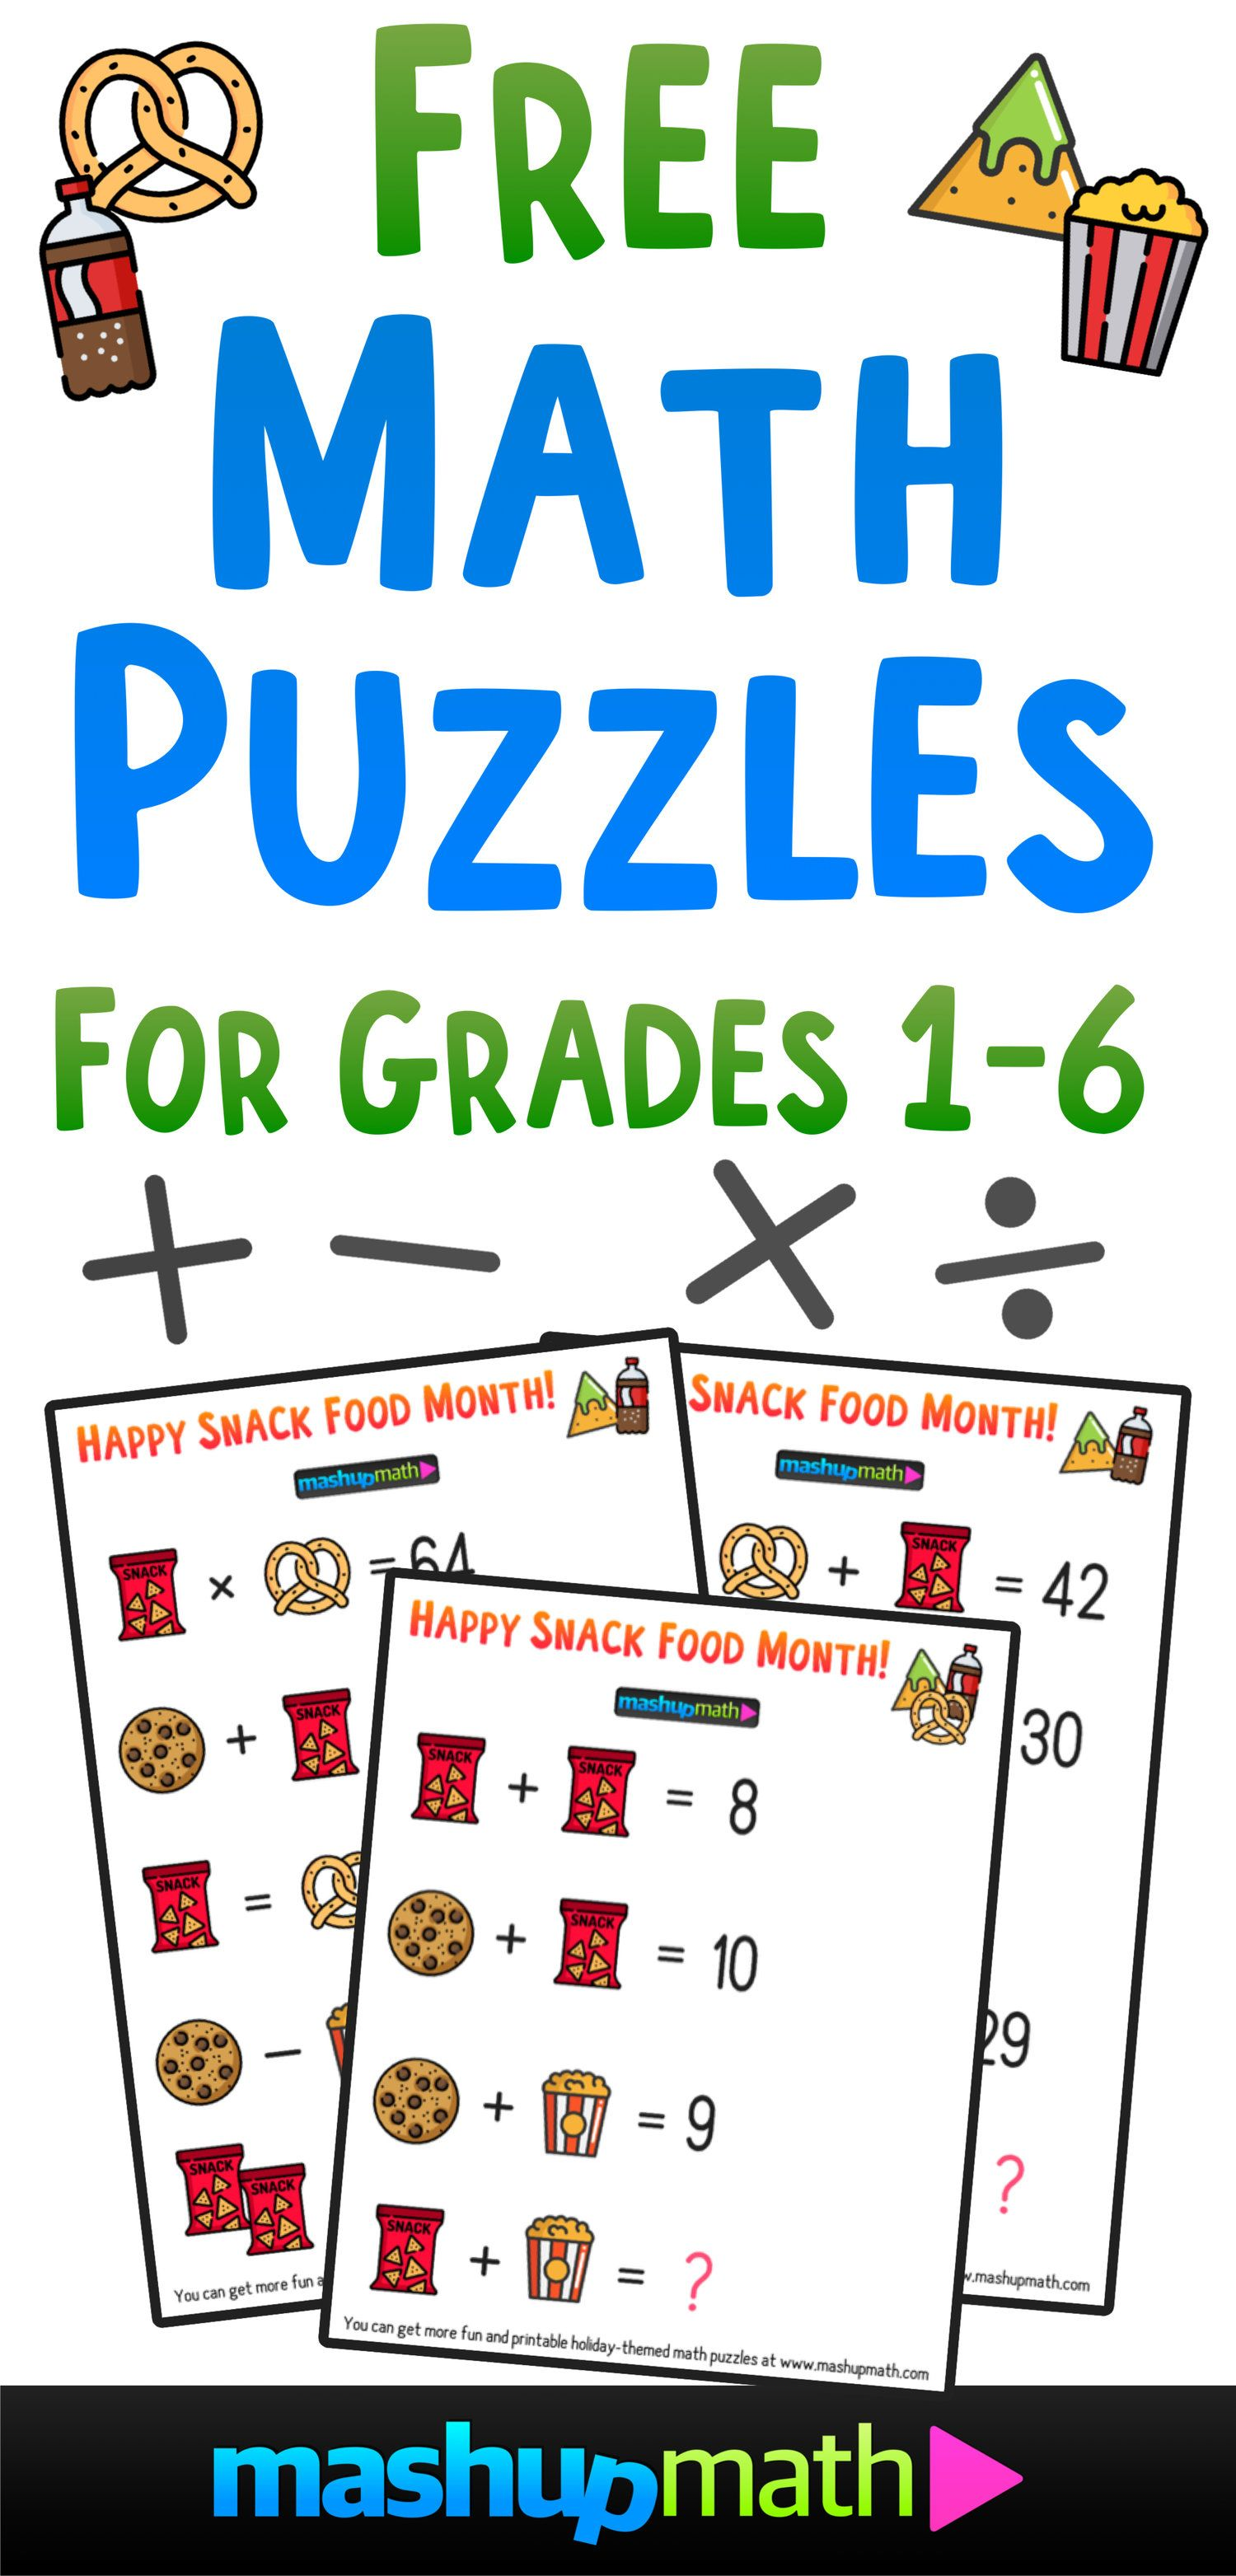 Free Math Brain Teaser Puzzles For Kids In Grades 1 6 To Celebrate Snack Food Month Fun Math Worksheets Maths Puzzles Free Math